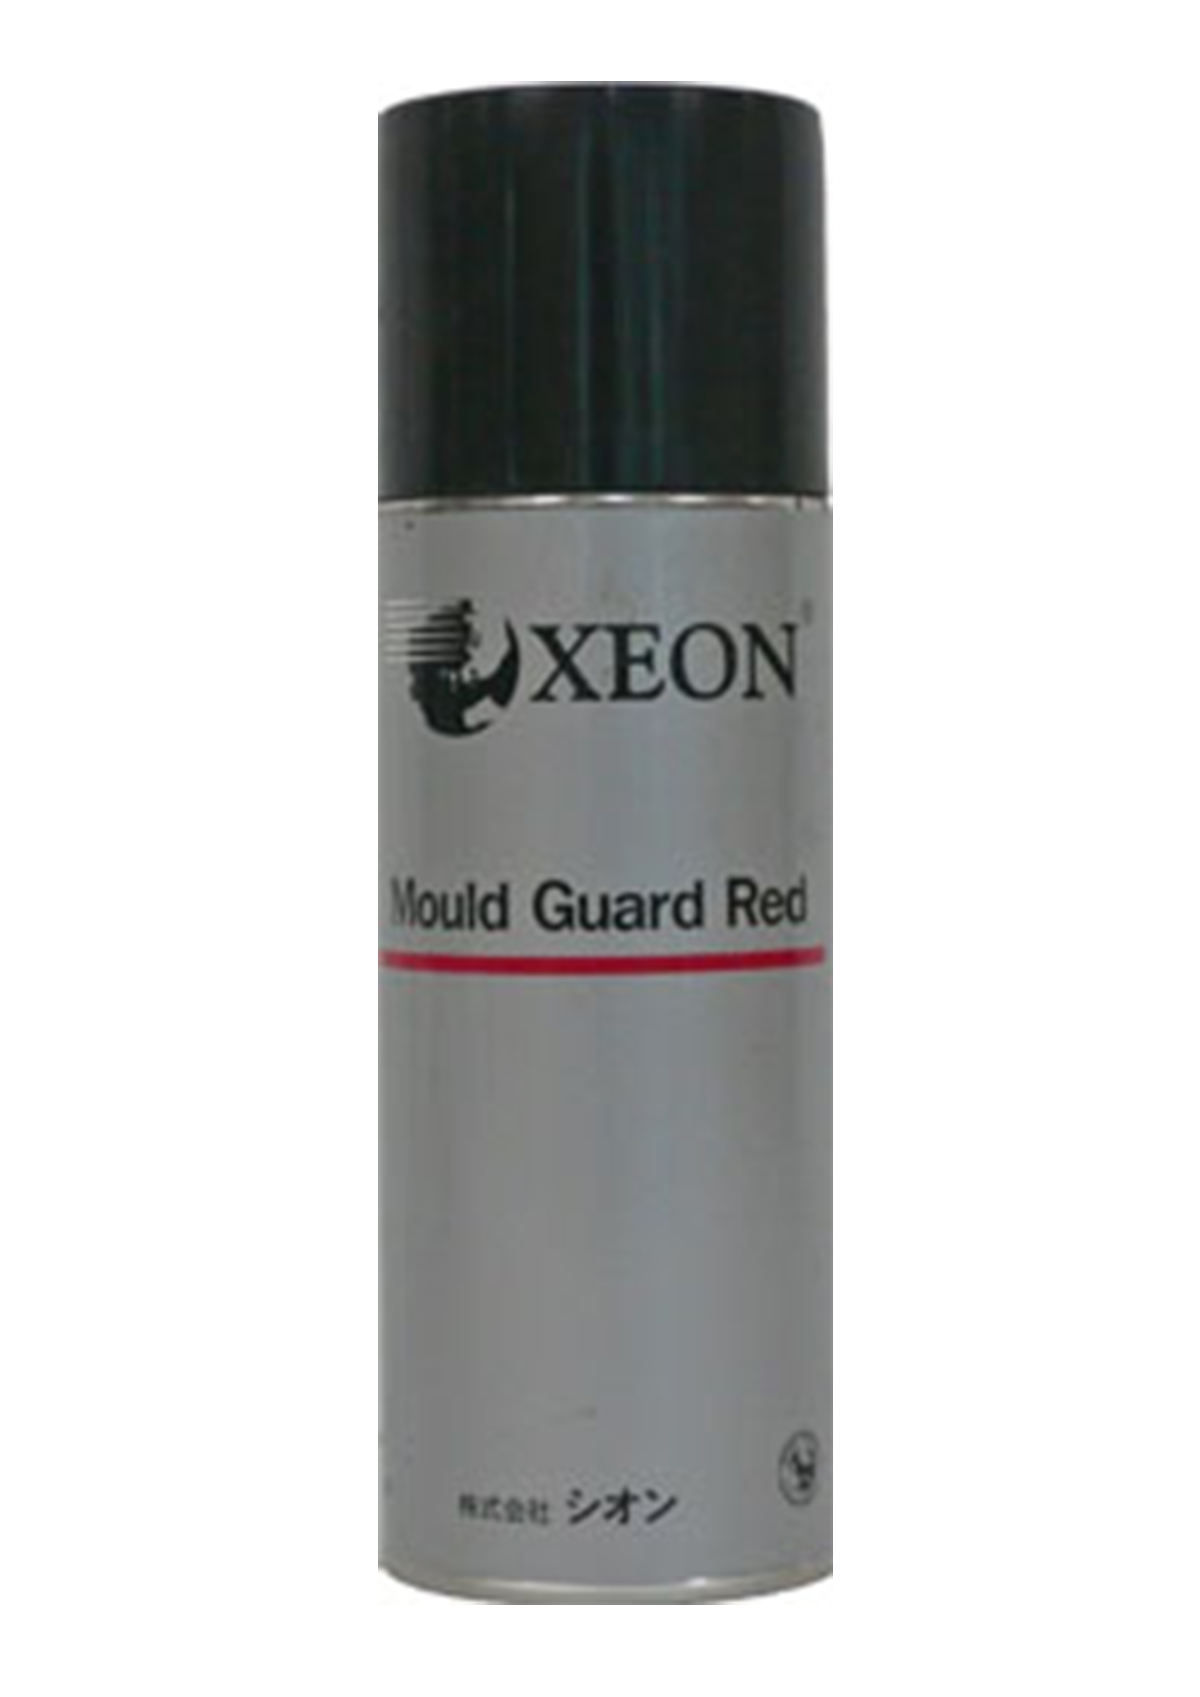 XEON 014 Mould Guard (Red)